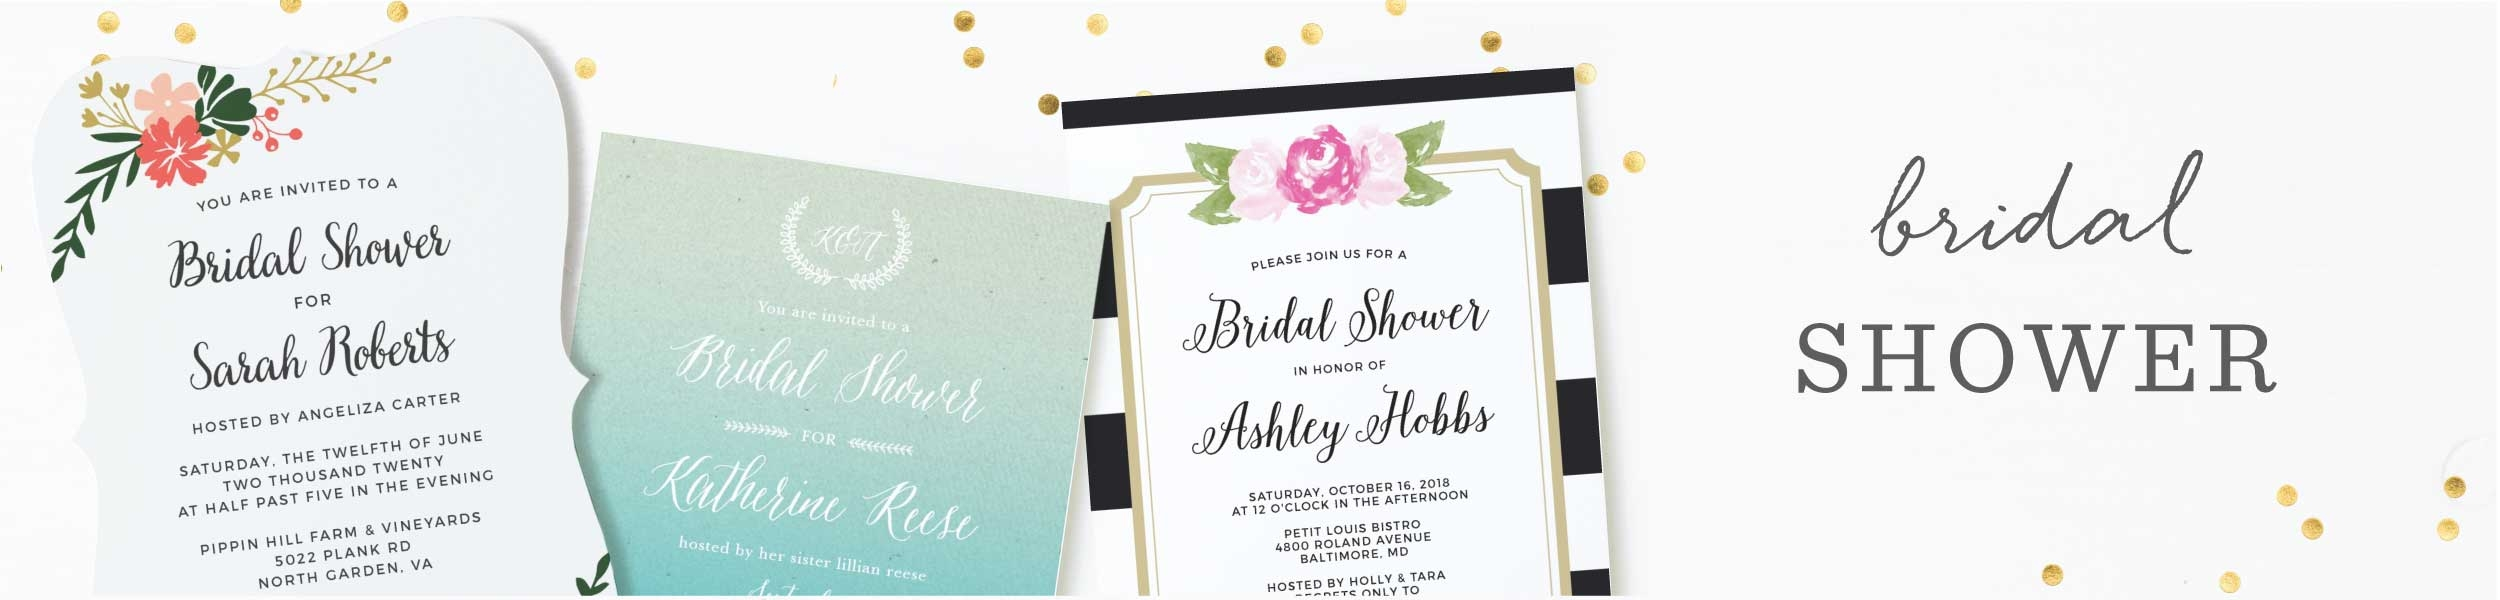 Bridal Shower Invitations & Wedding Shower Invitations | BasicInvite